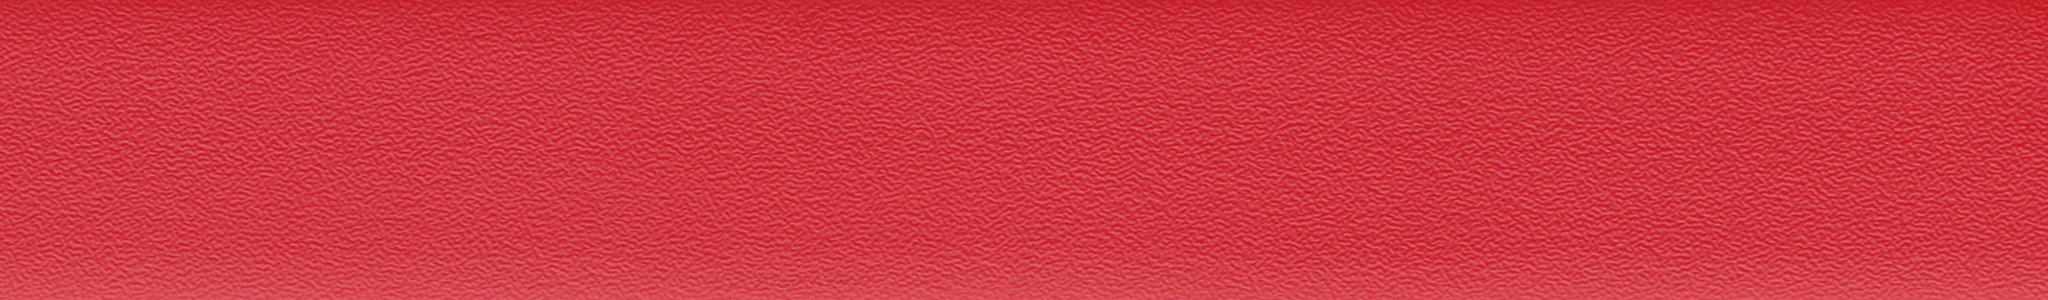 HU 13148 ABS Edge Red Pearl 101